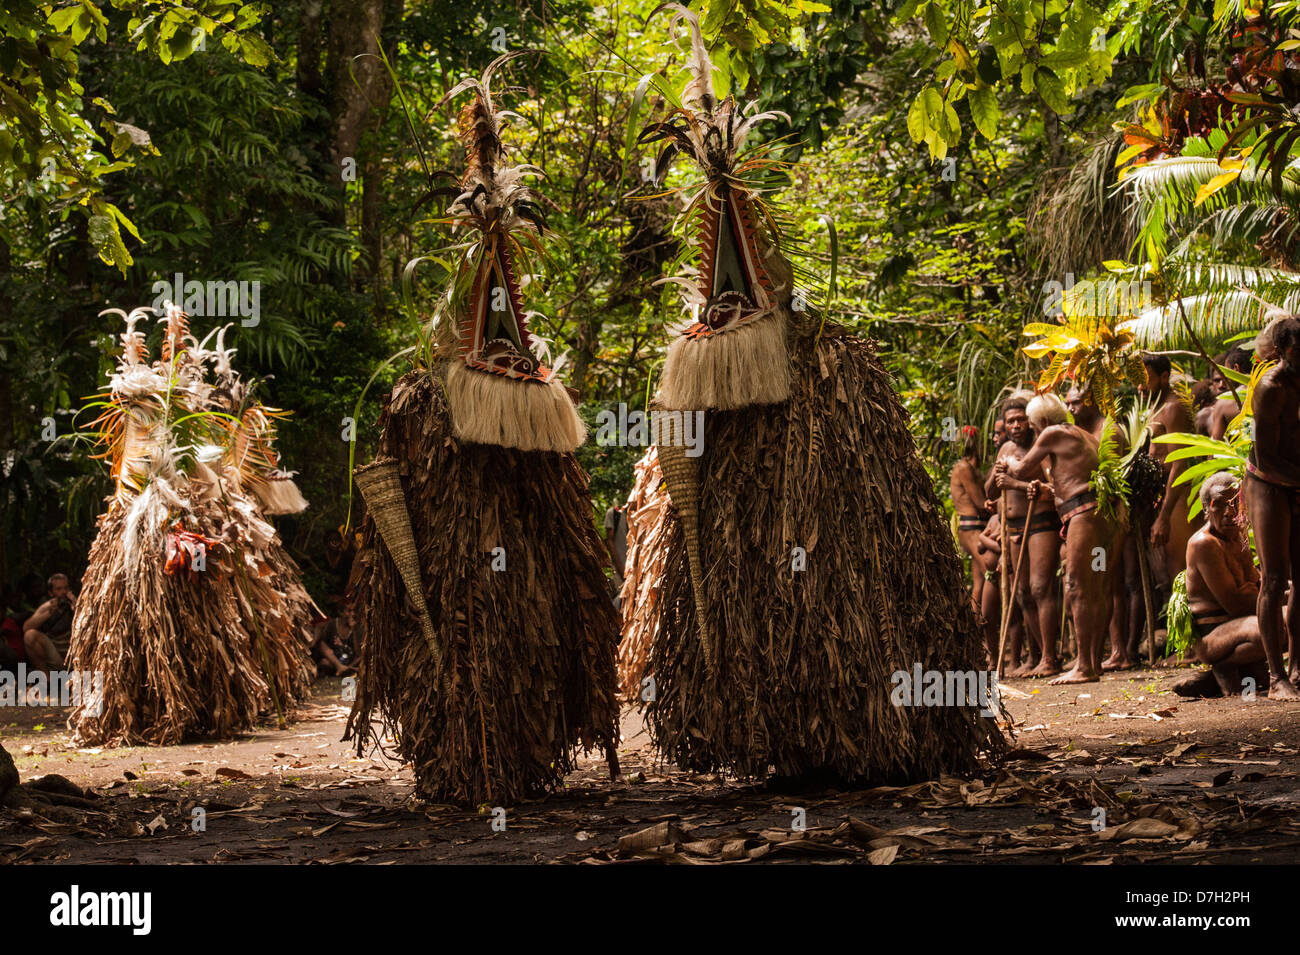 Rom Dancers on the last day of Ambrym's annual Back to My Roots festival of traditional culture, Vanuatu Stock Photo